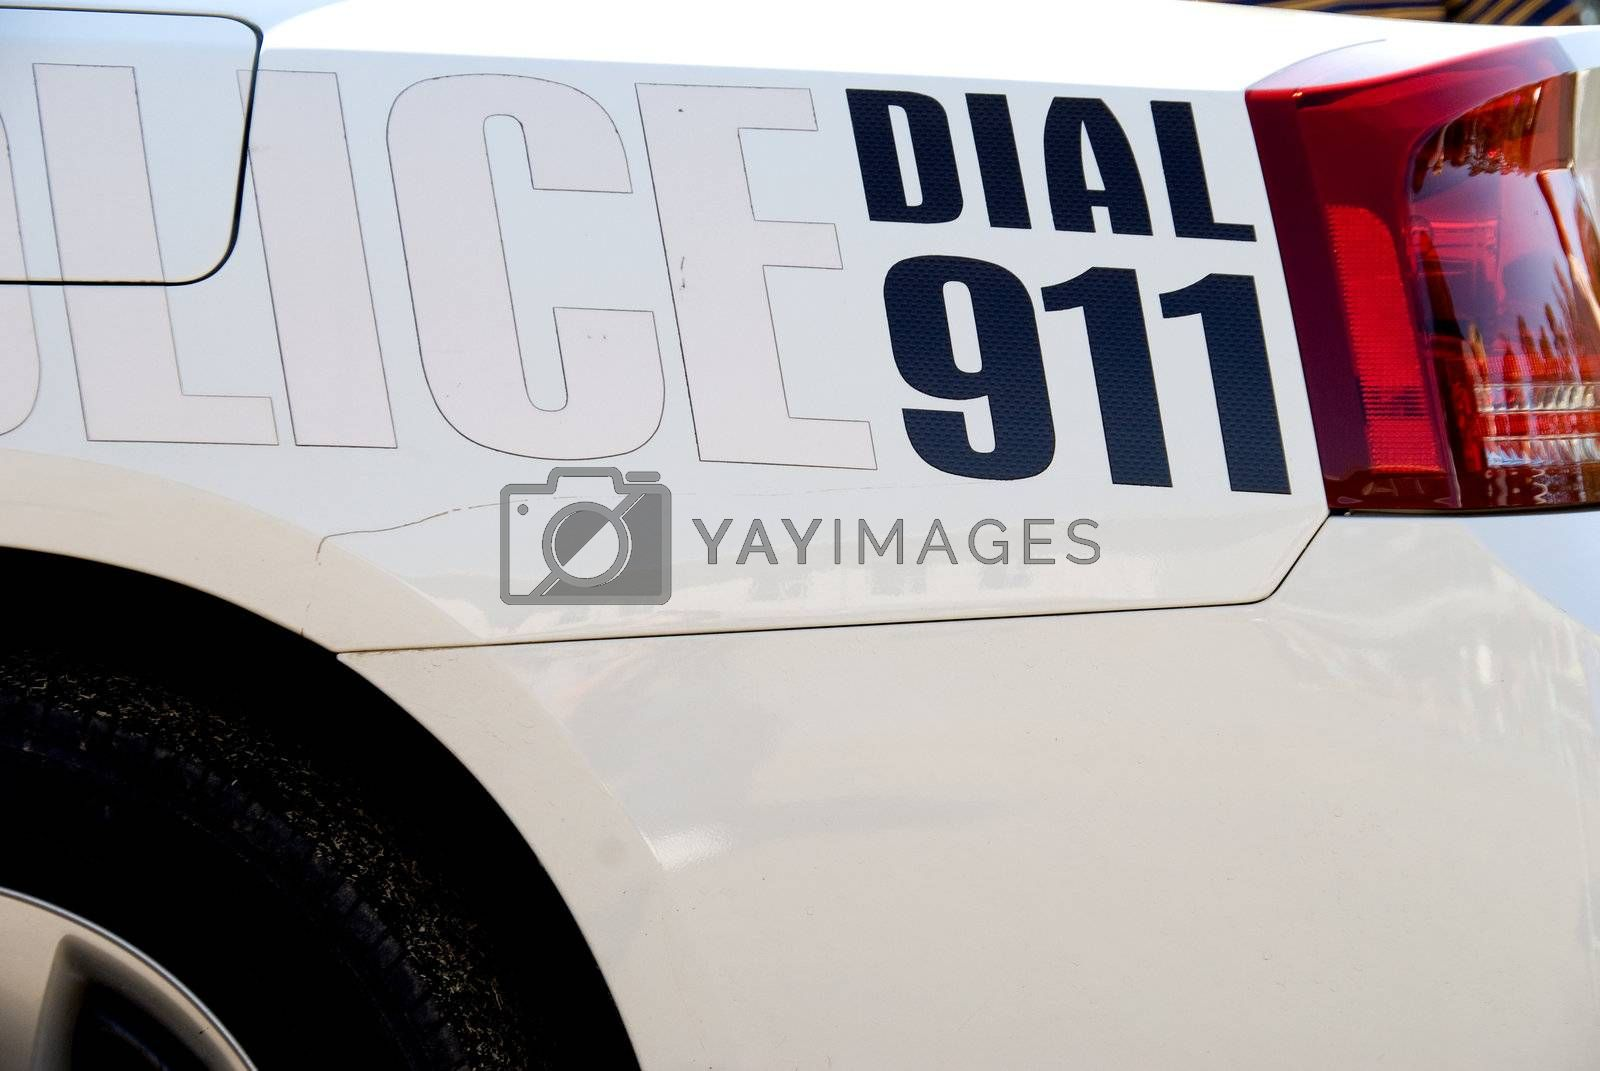 A message on the back of a police car: Dial 911.